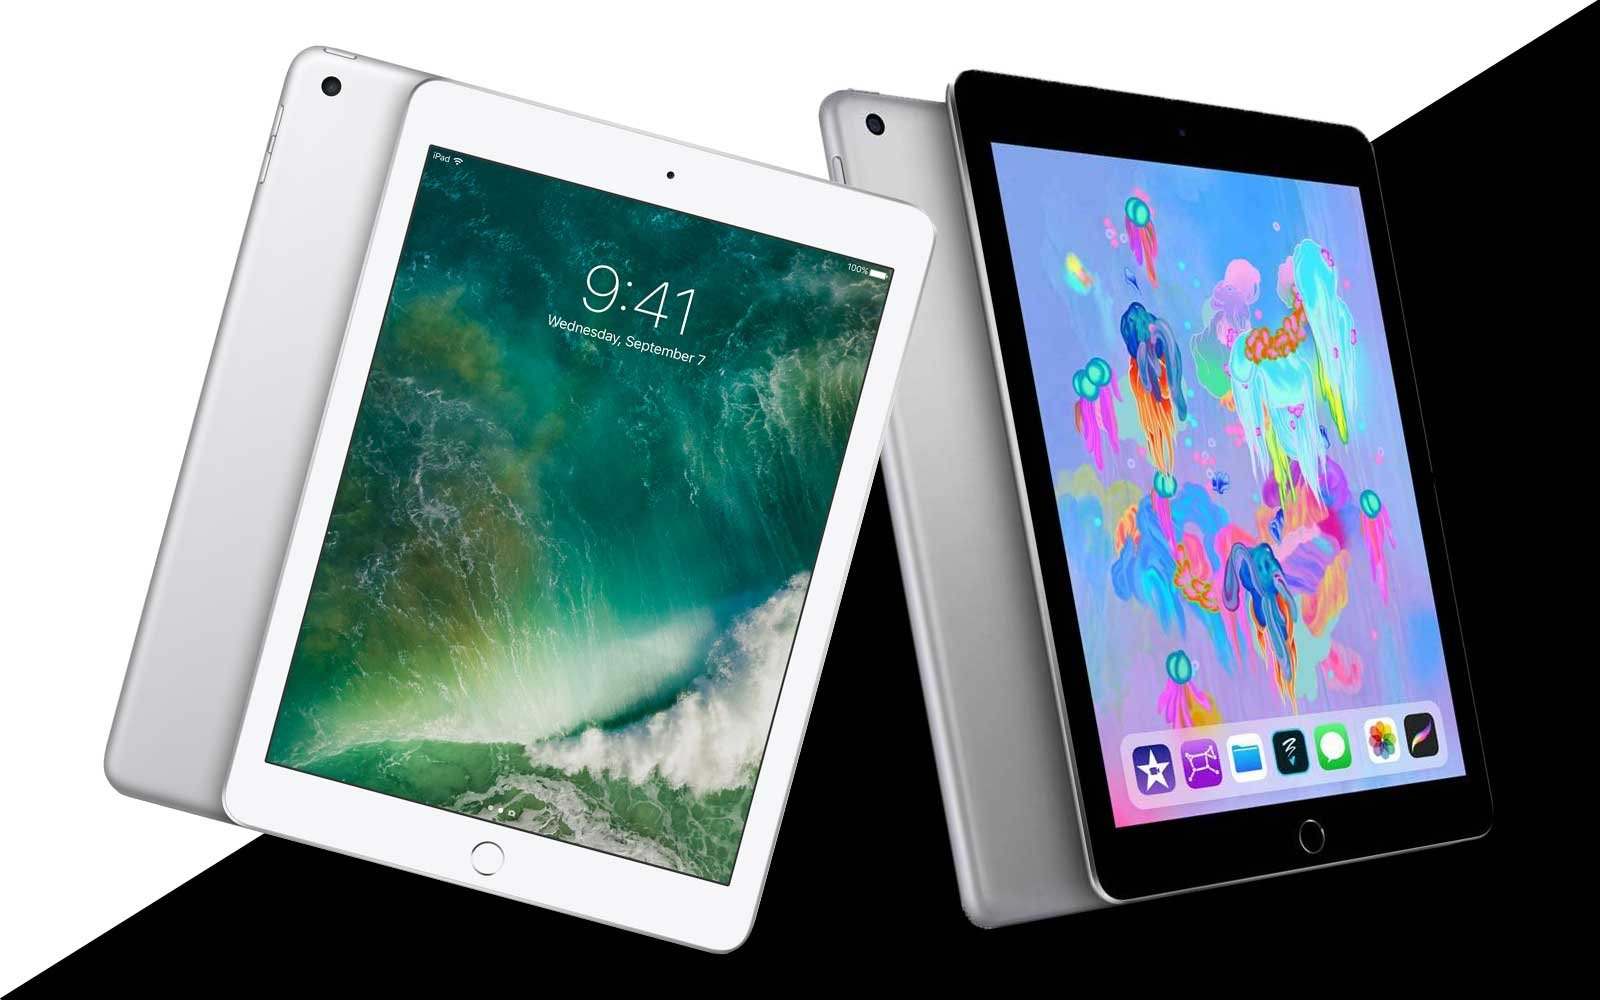 The Newest iPad Is $80 Off at Walmart